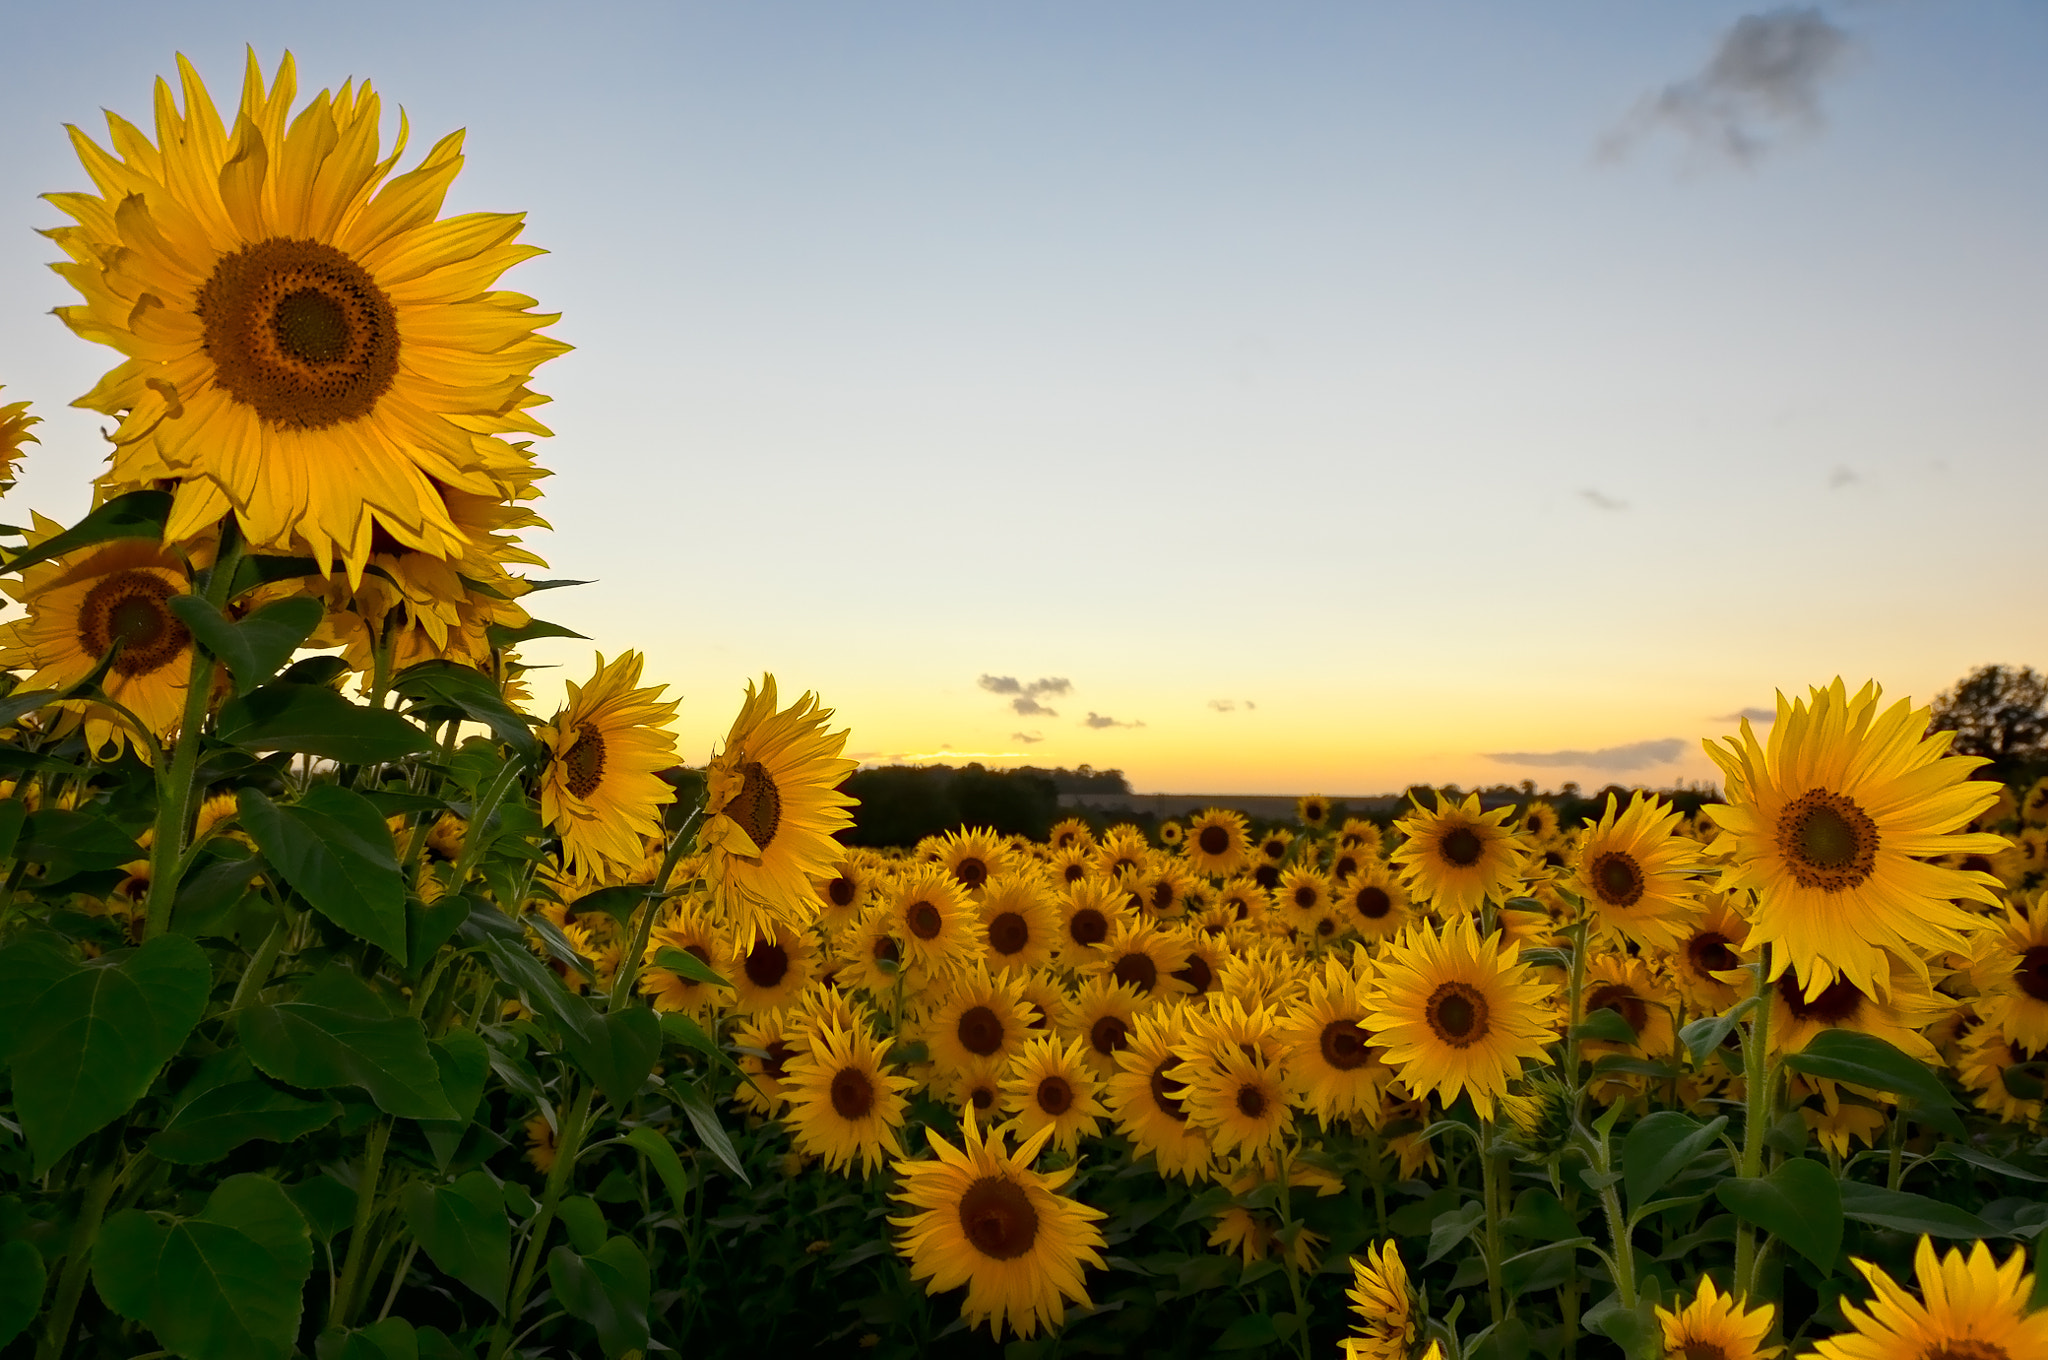 Photograph Sunflowers by toby haskins on 500px